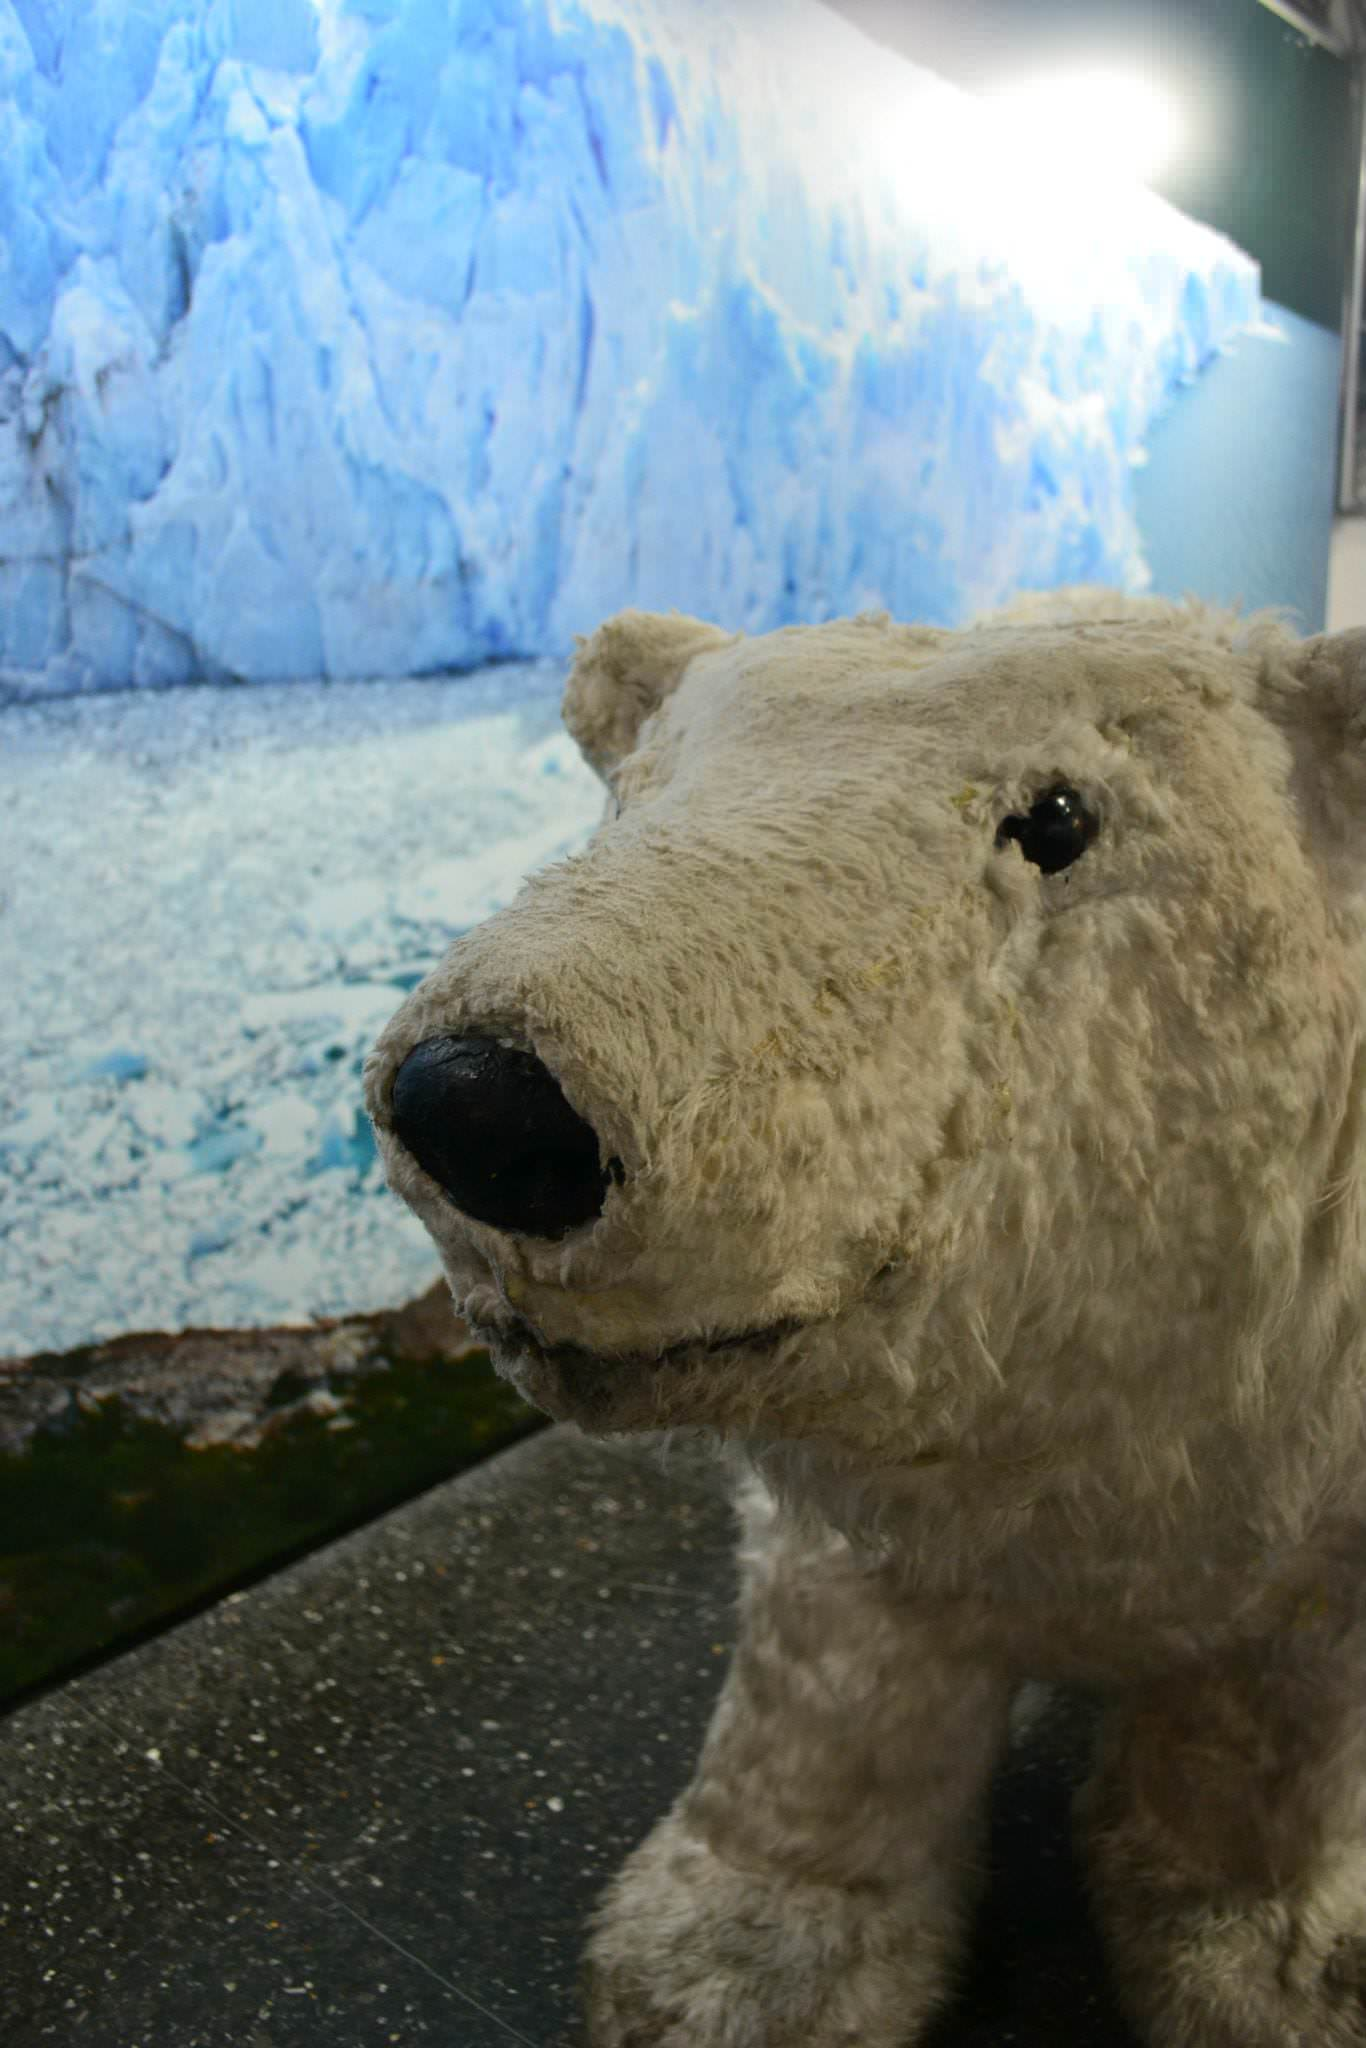 Un oso polar a tamaño natural te recibe en el Ice Bar